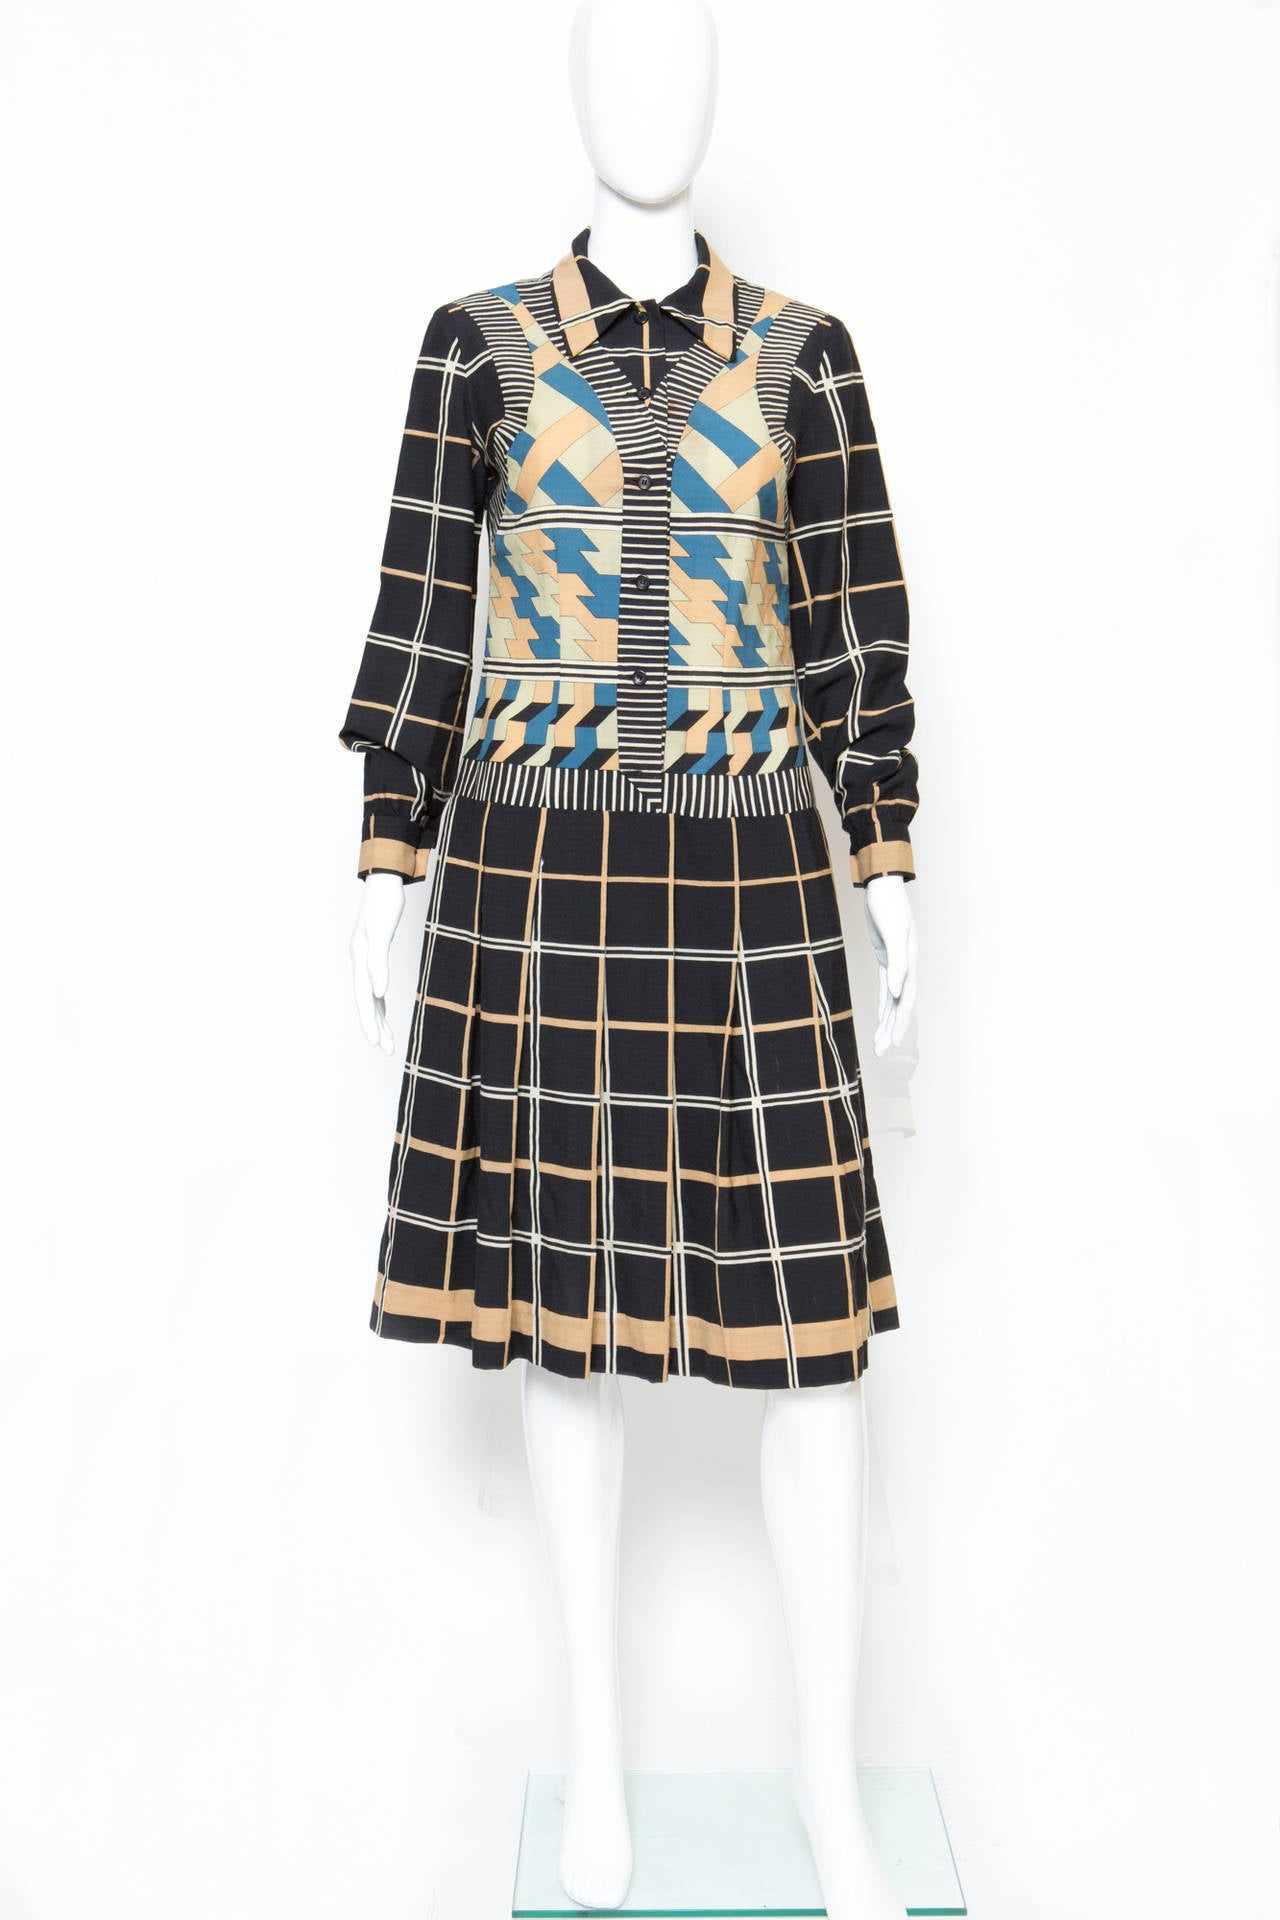 1970s Lanvin wool dress (70% wool 30% nylon) featuring a placed print, a front button opening, a pleated skirt, long sleeves with buttoned cuffs. In good vintage condition. Made in France. Estimated size Estimated size 36fr/ US4/ UK8 We guarantee